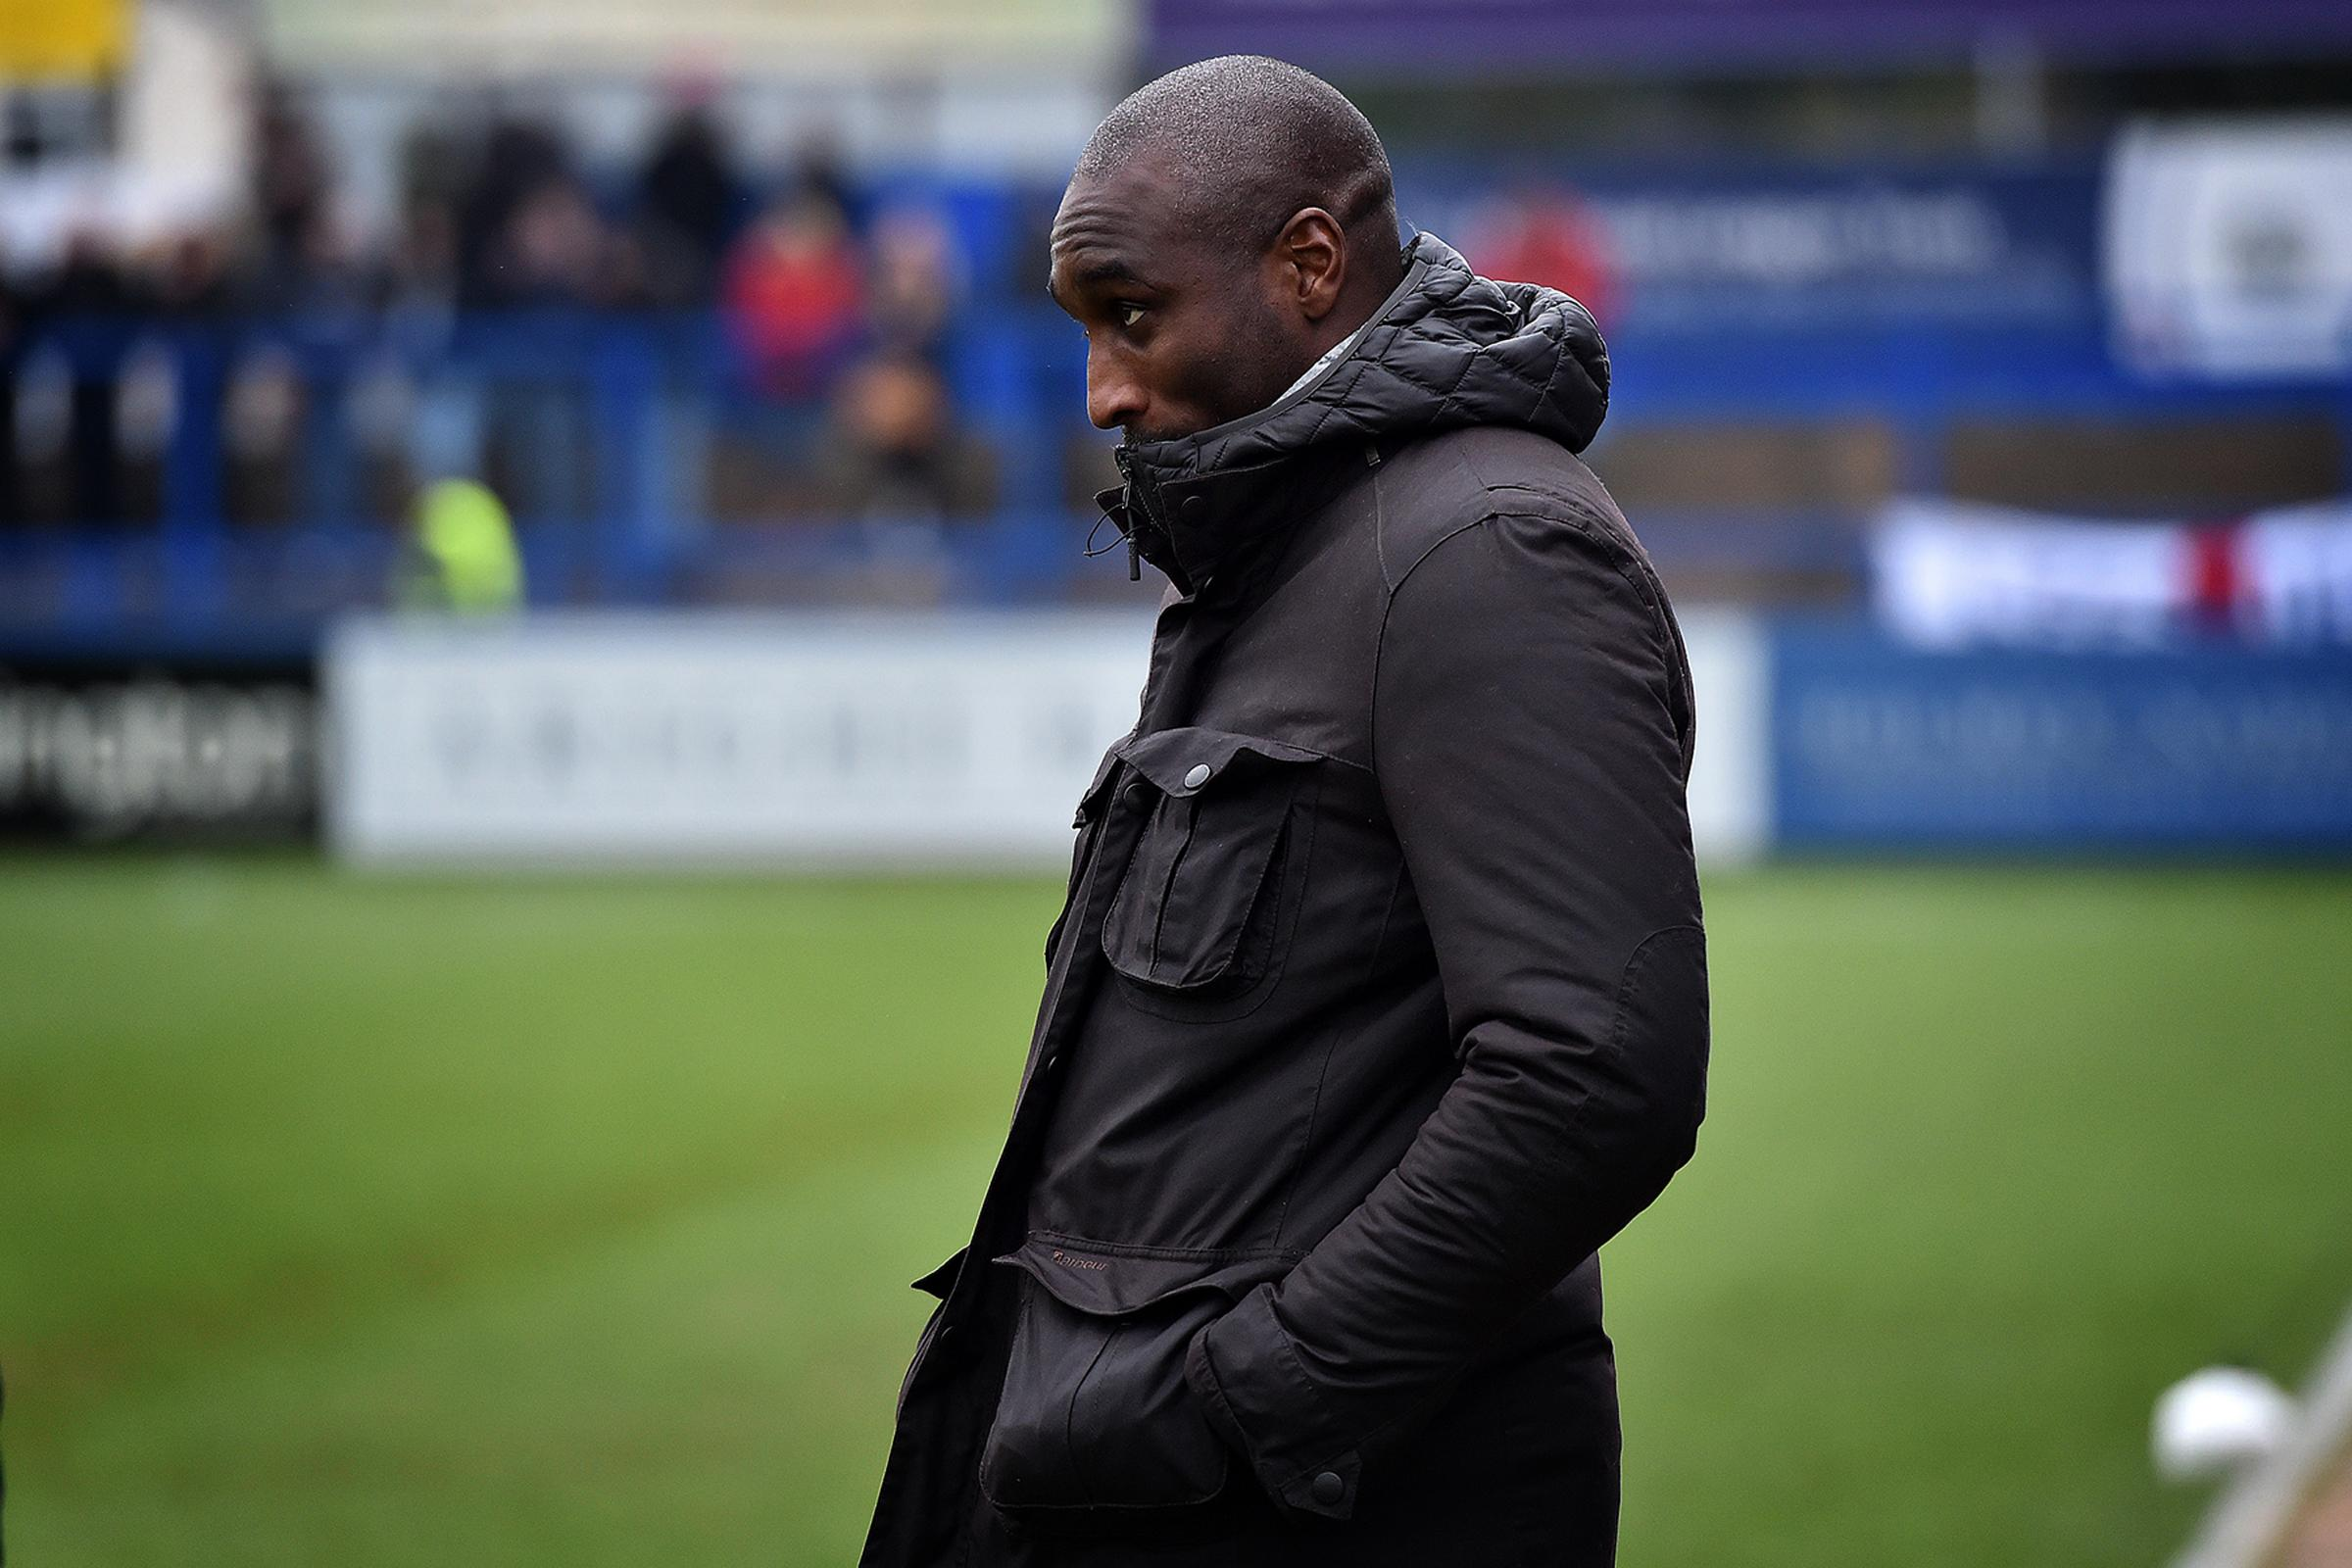 Campbell: Macclesfield manager